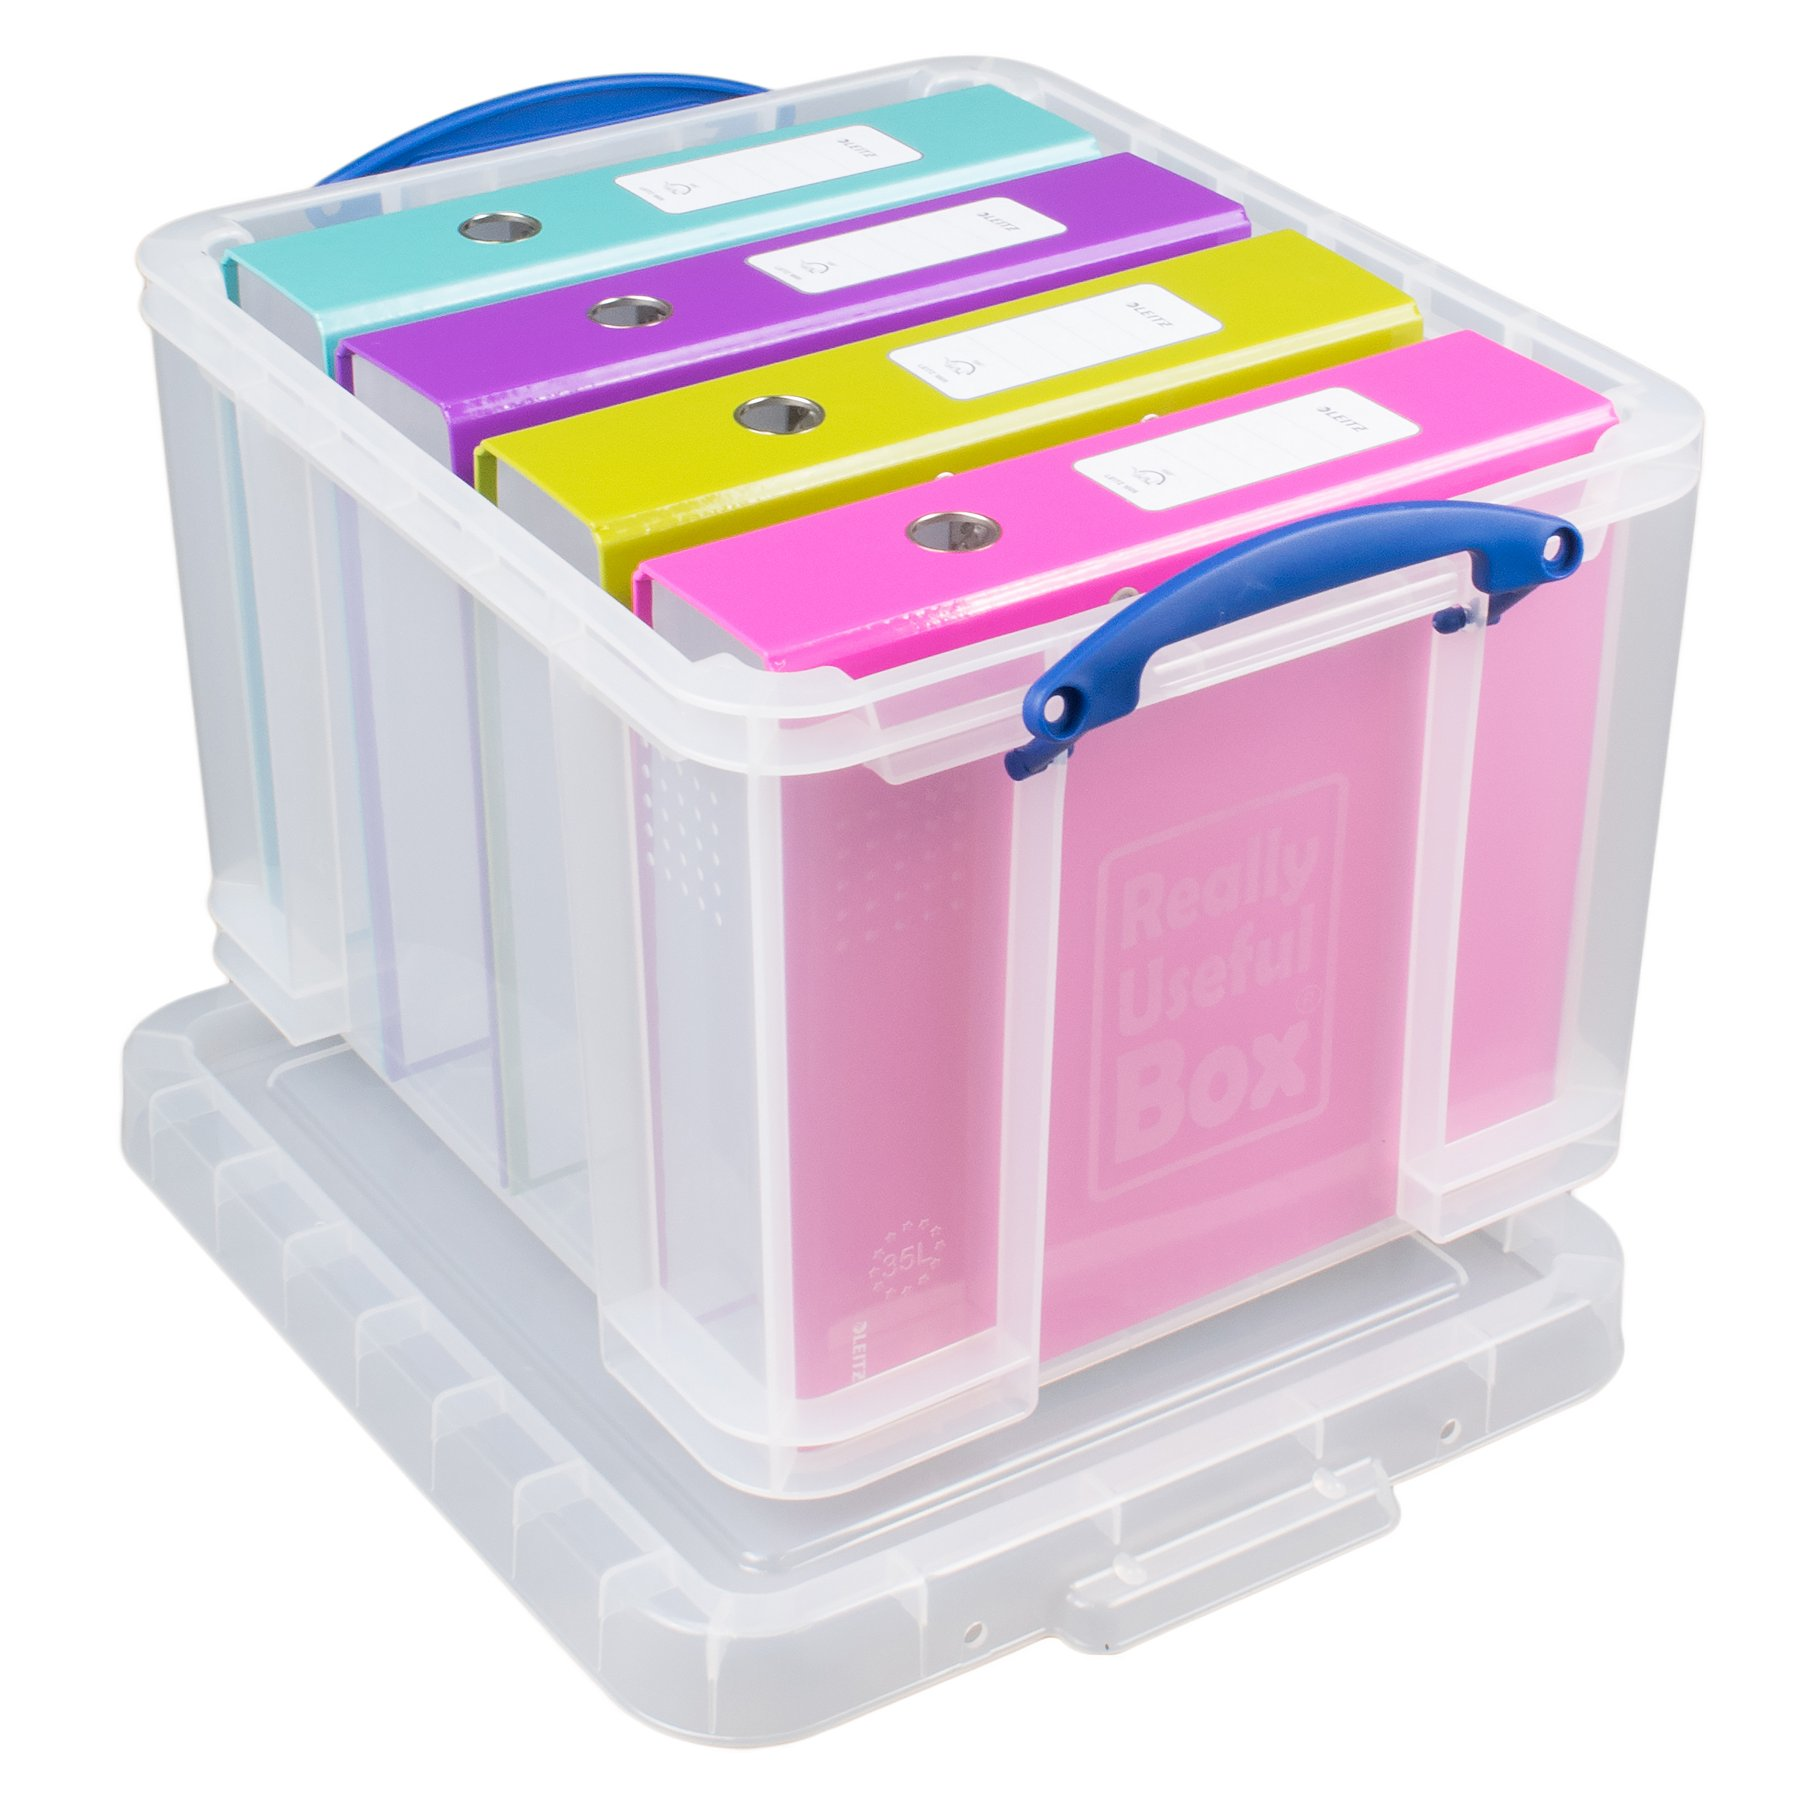 2 x /'REALLY USEFUL STORAGE BOXES/' 50 LITRE NEW